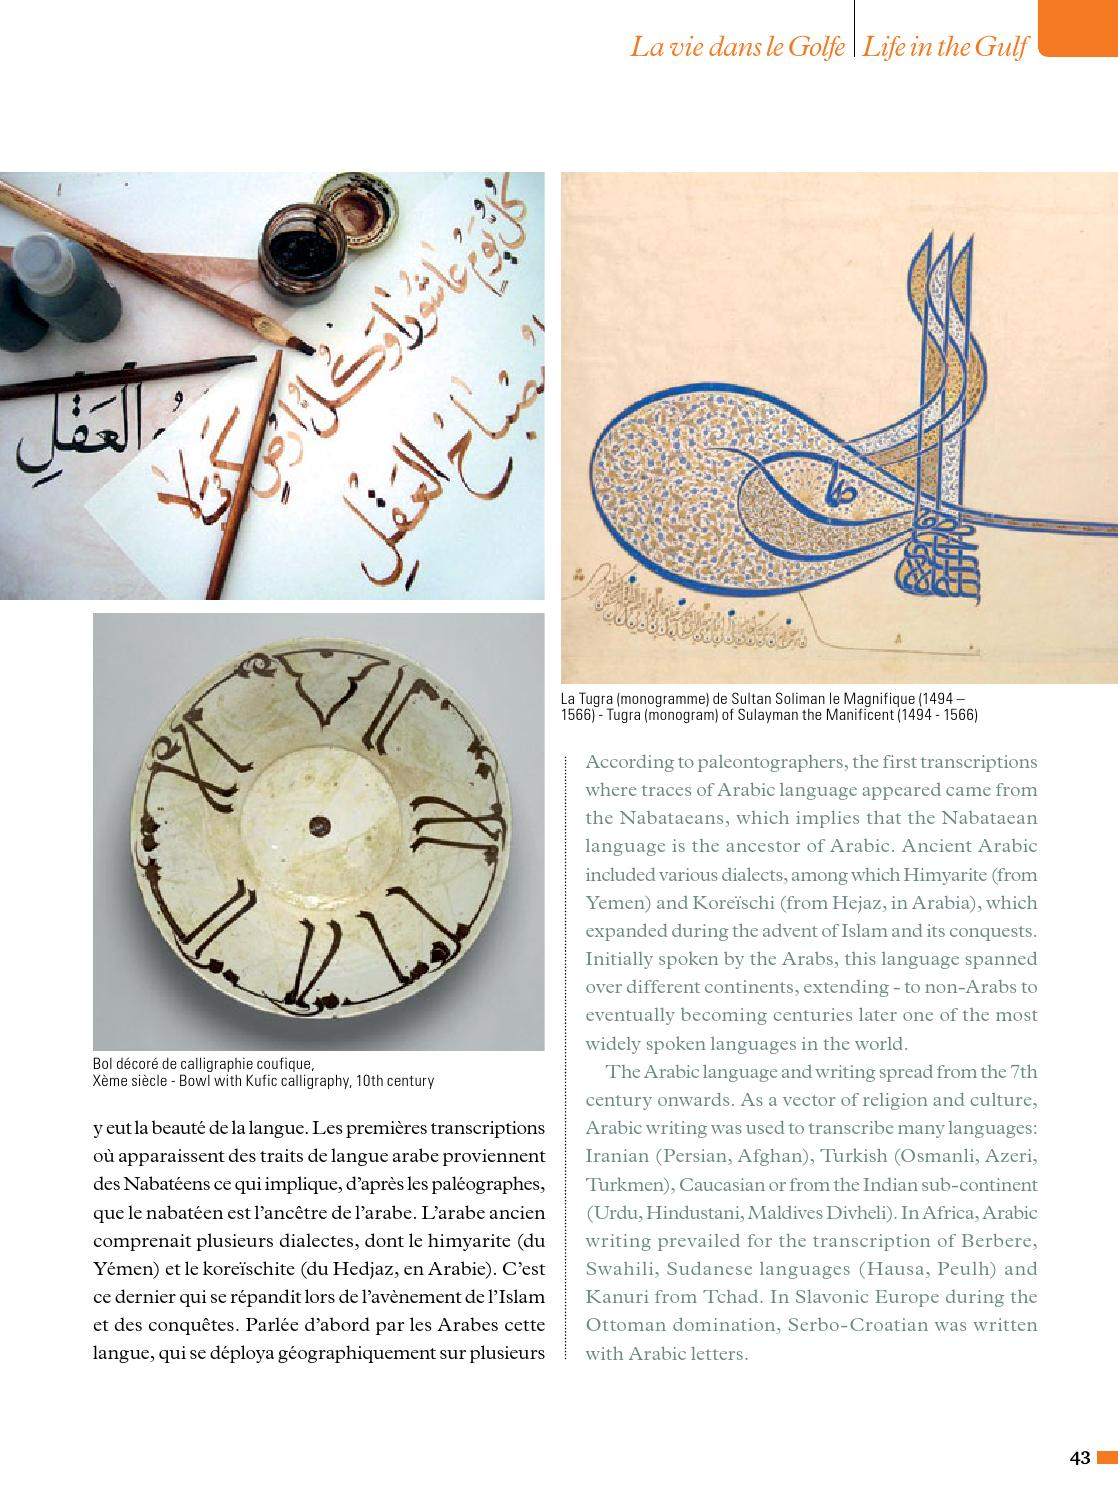 Calligraphie Arabe Coufique Madame June 2015 By Catherine Gilbert Issuu